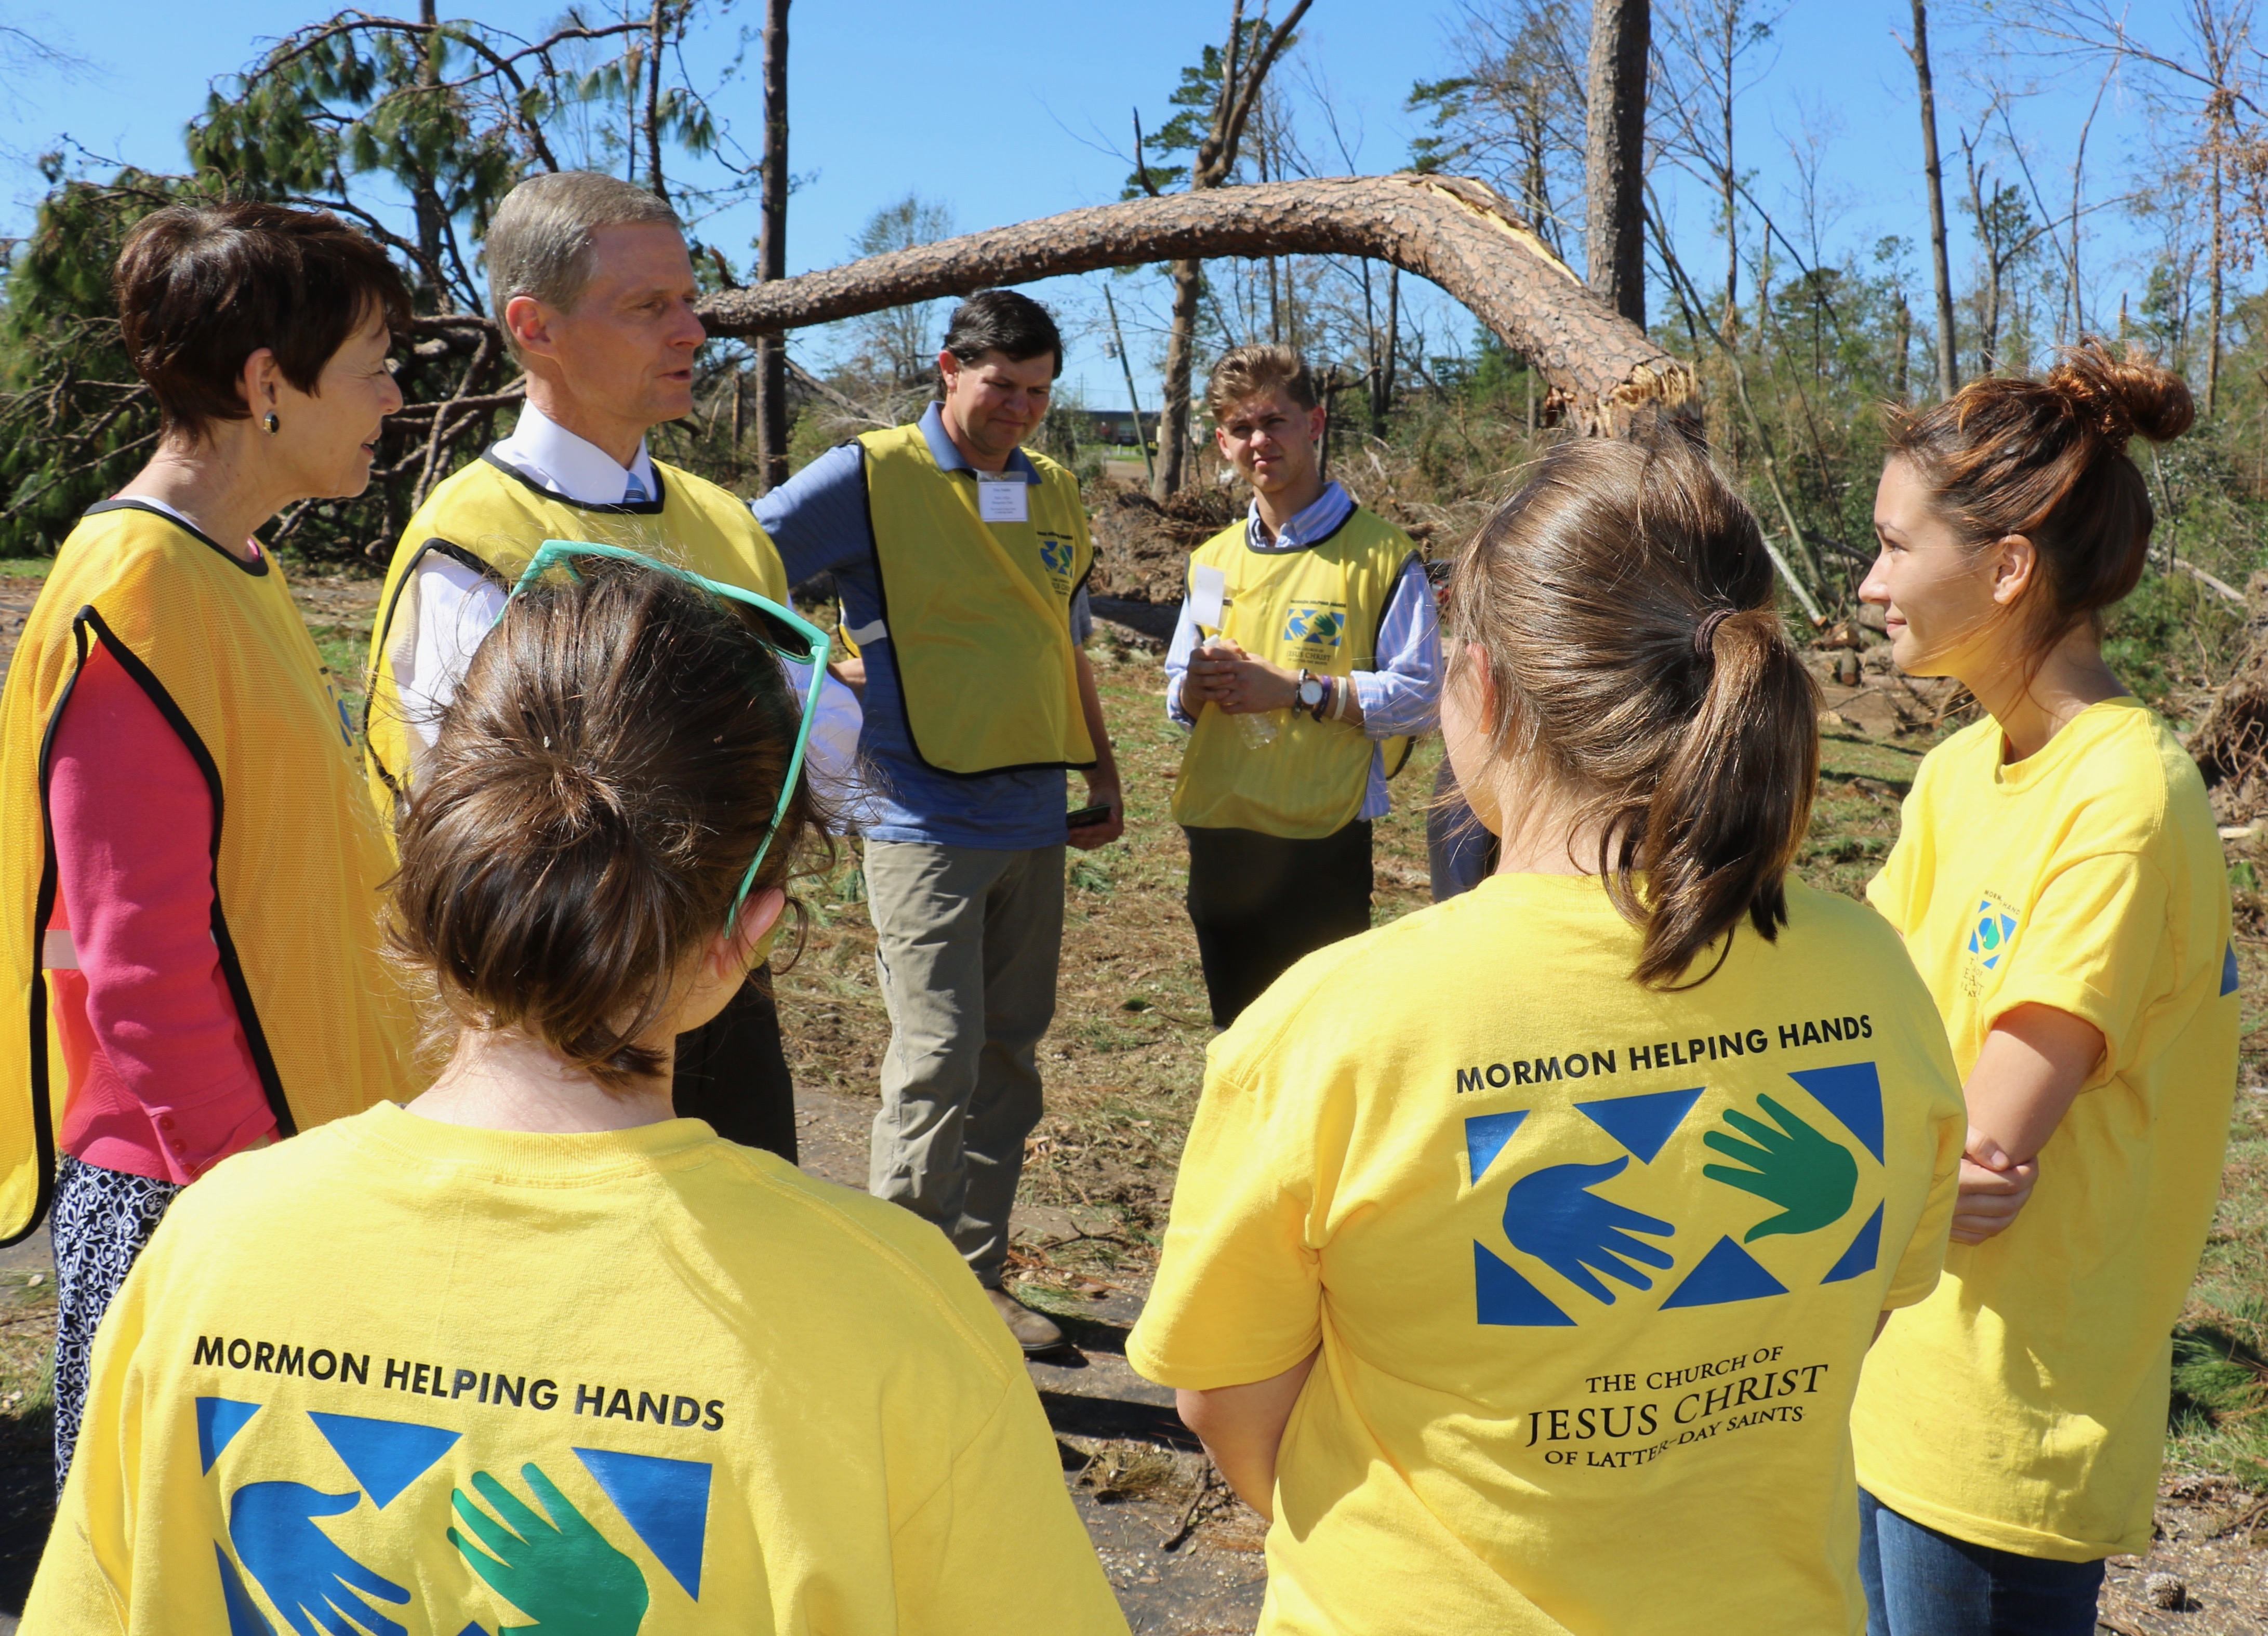 Helping Hands volunteers in Marianna, Florida, take a break for a few minutes on Oct. 21, 2018, to speak with Elder David A. Bednar of The Church of Jesus Christ of Latter-day Saints' Quorum of the Twelve Apostles and Sister Susan Bednar.